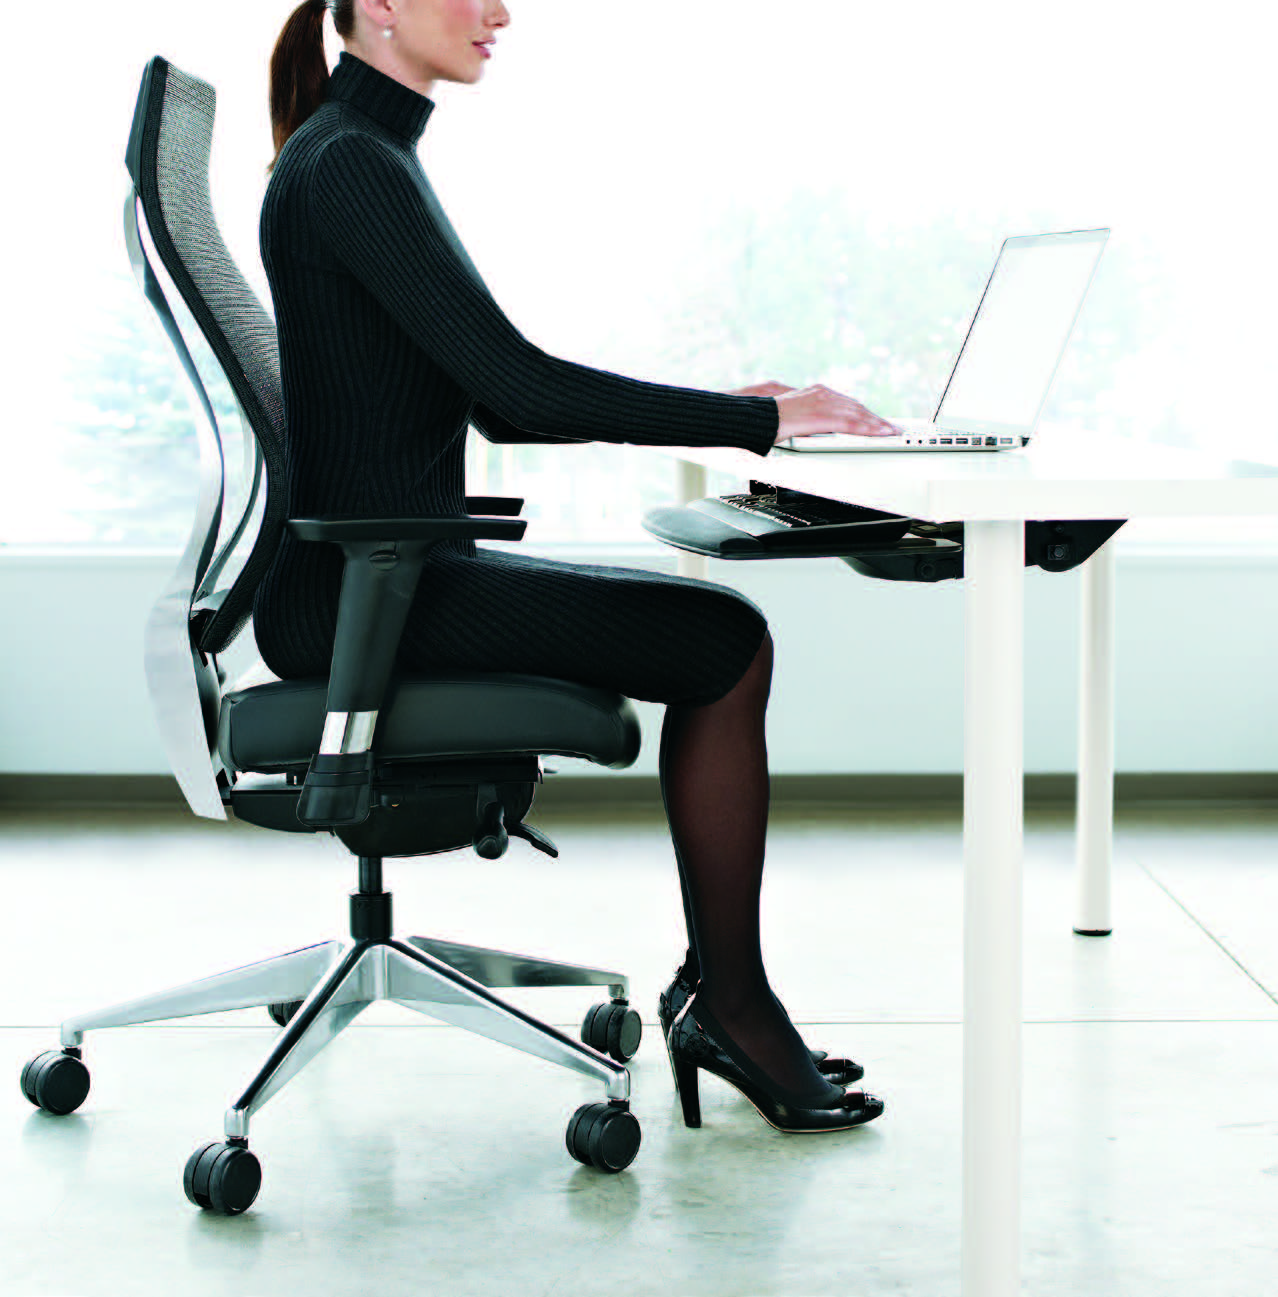 woman sitting on a polished aluminum you task chair working at her desk